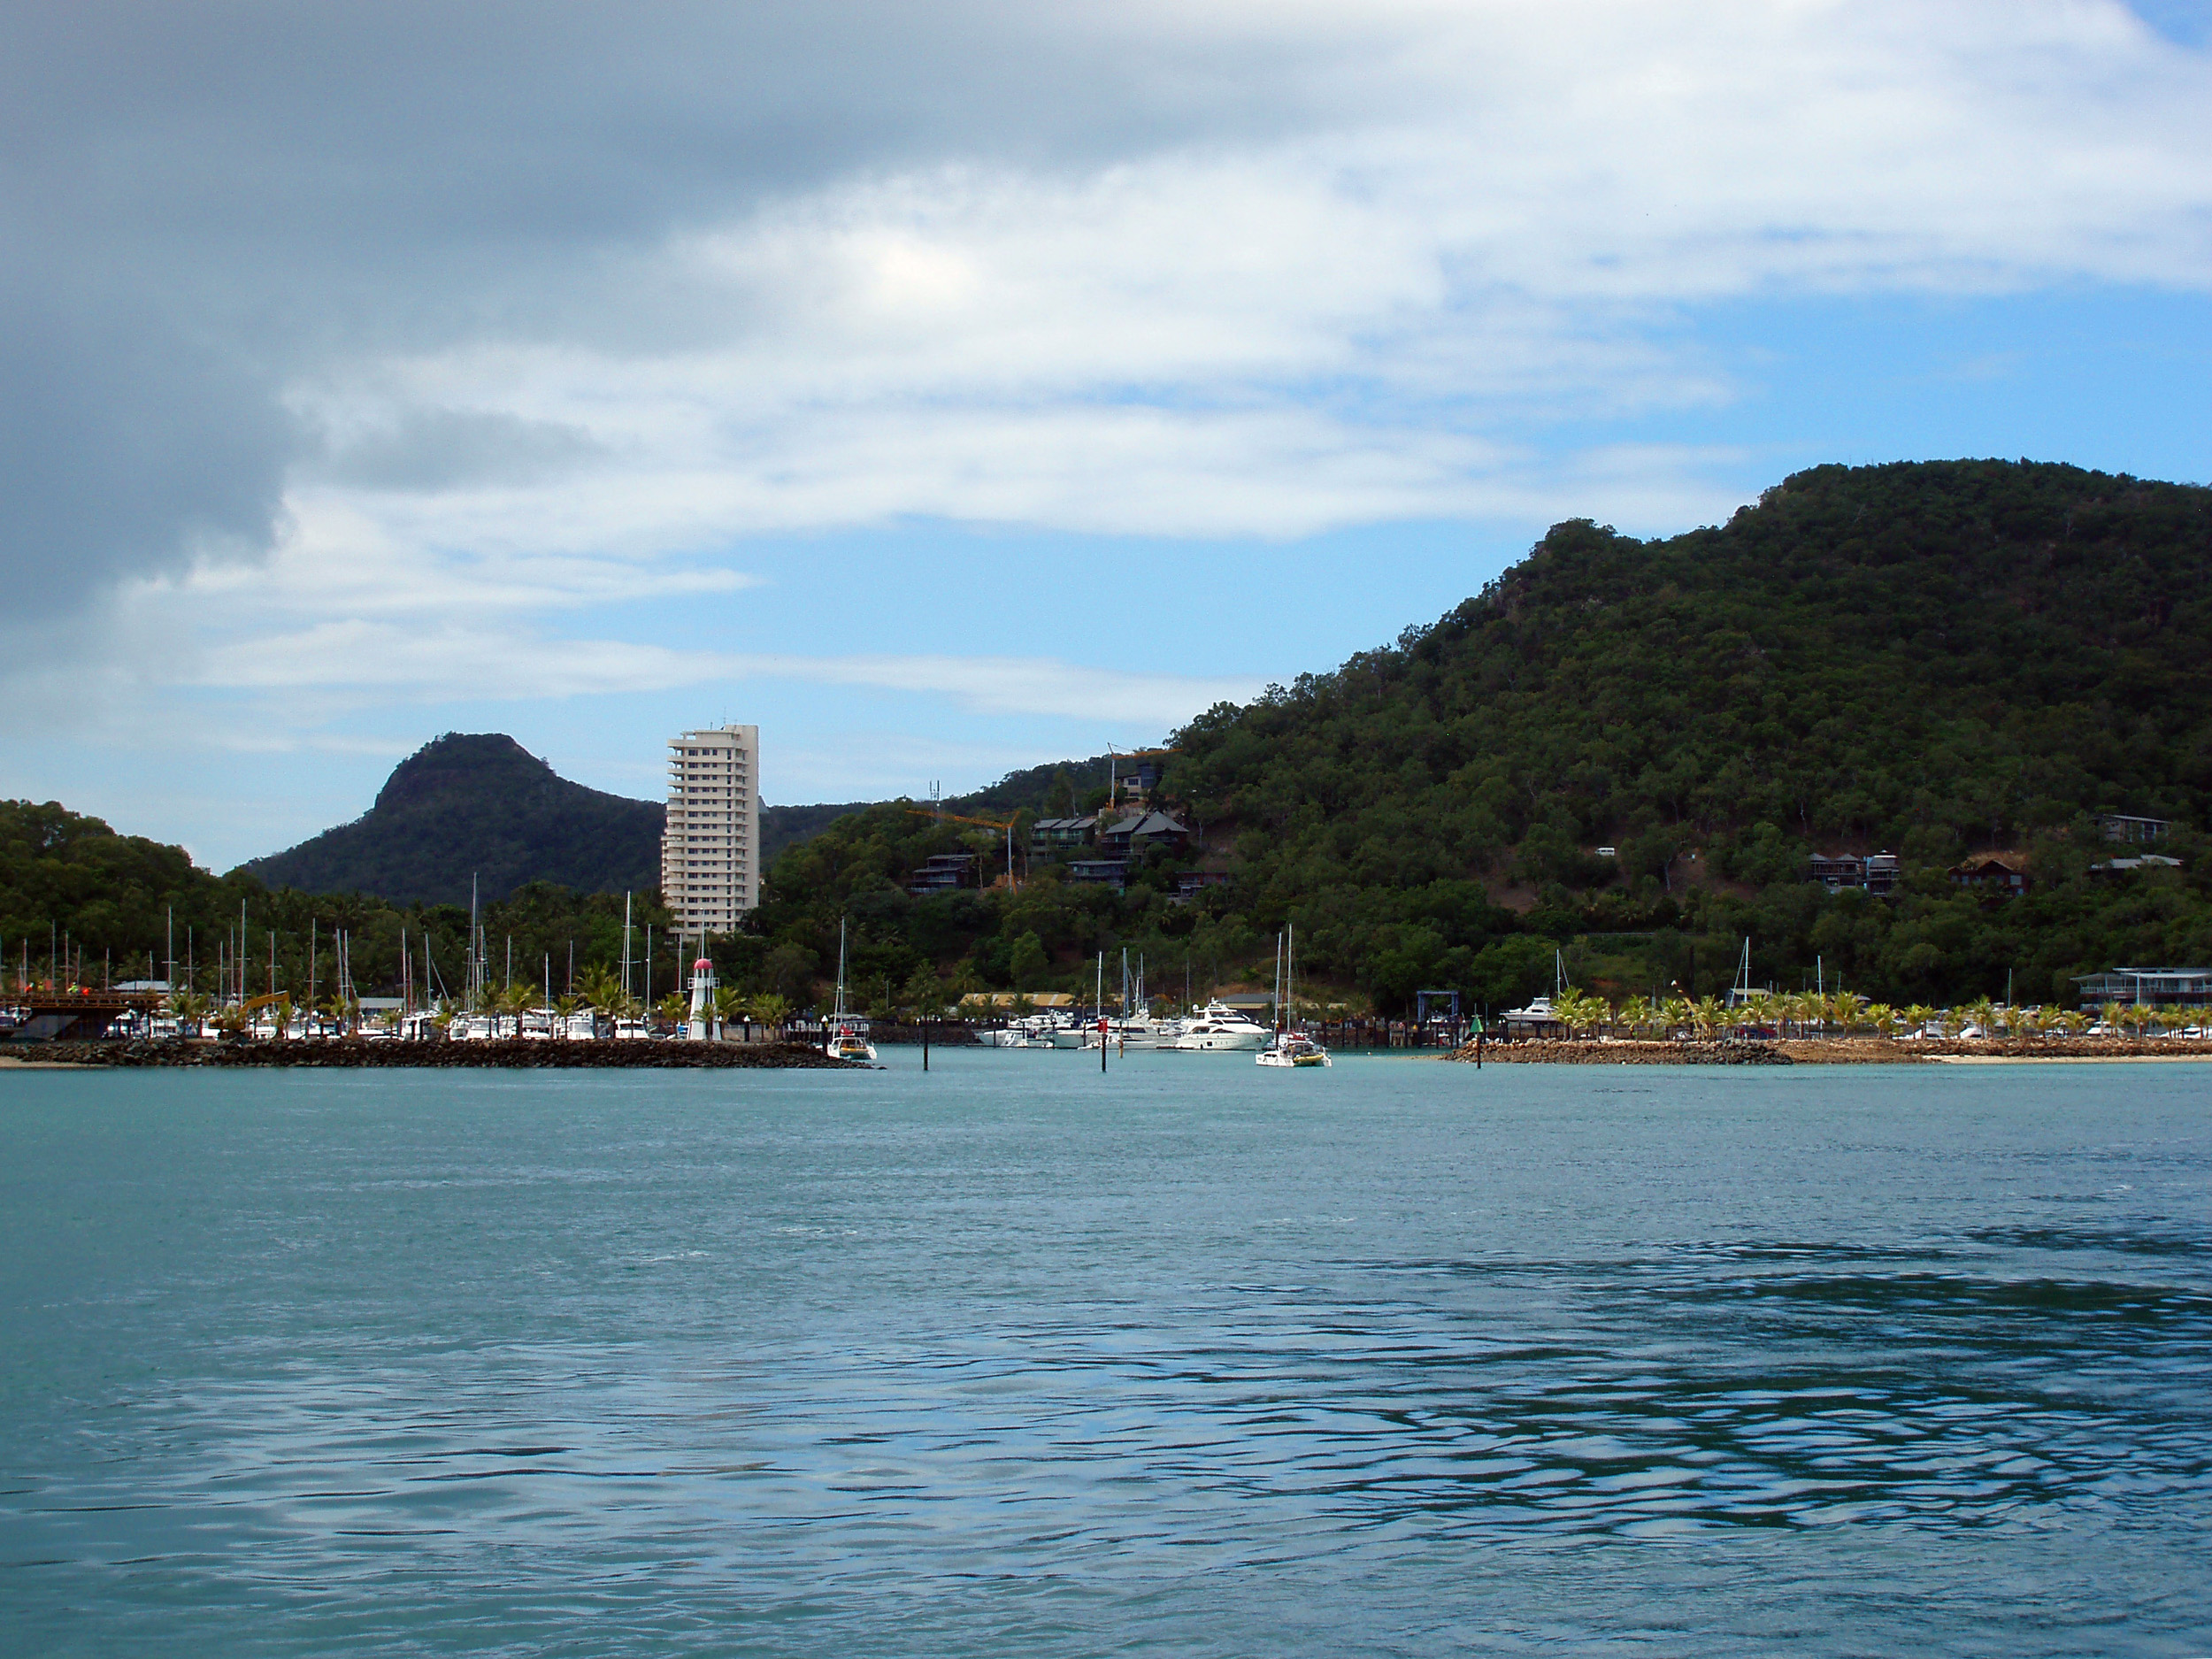 hamilton island marnina from the water